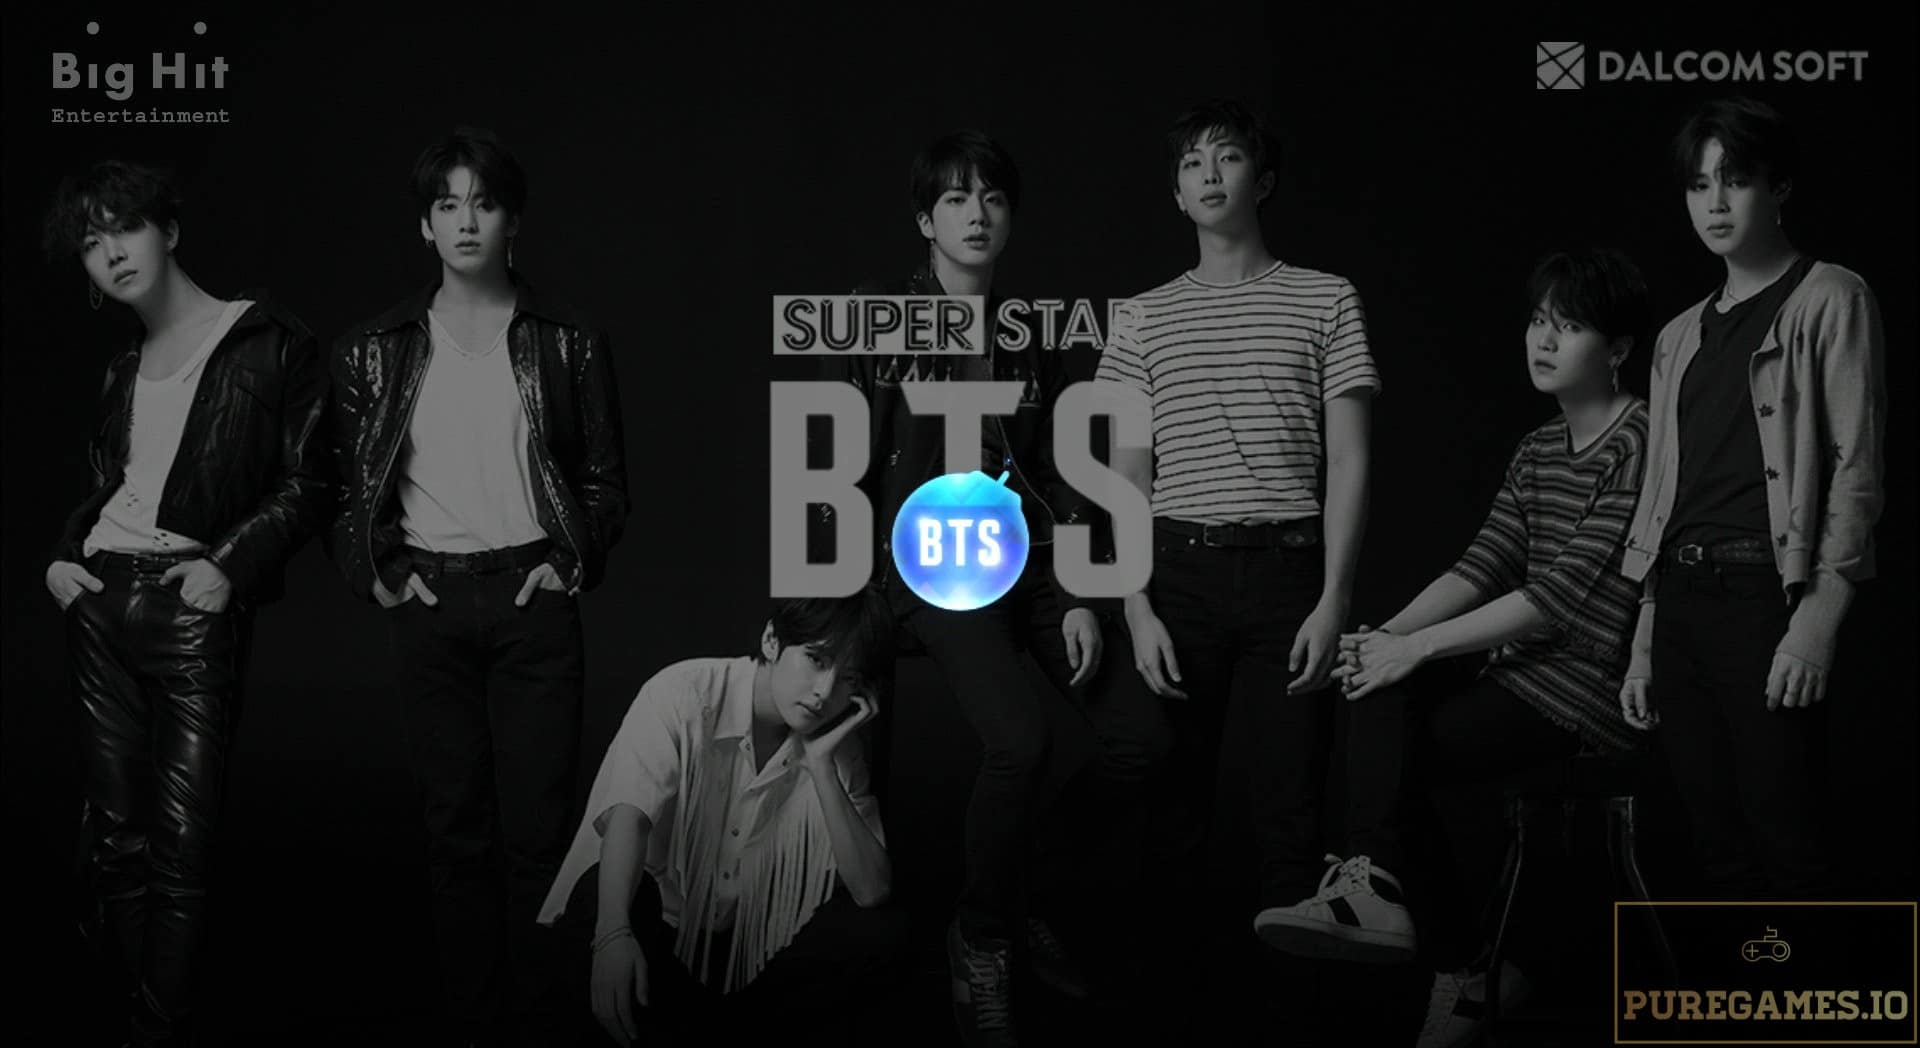 Download SuperStar BTS MOD APK - For Android/iOS 7